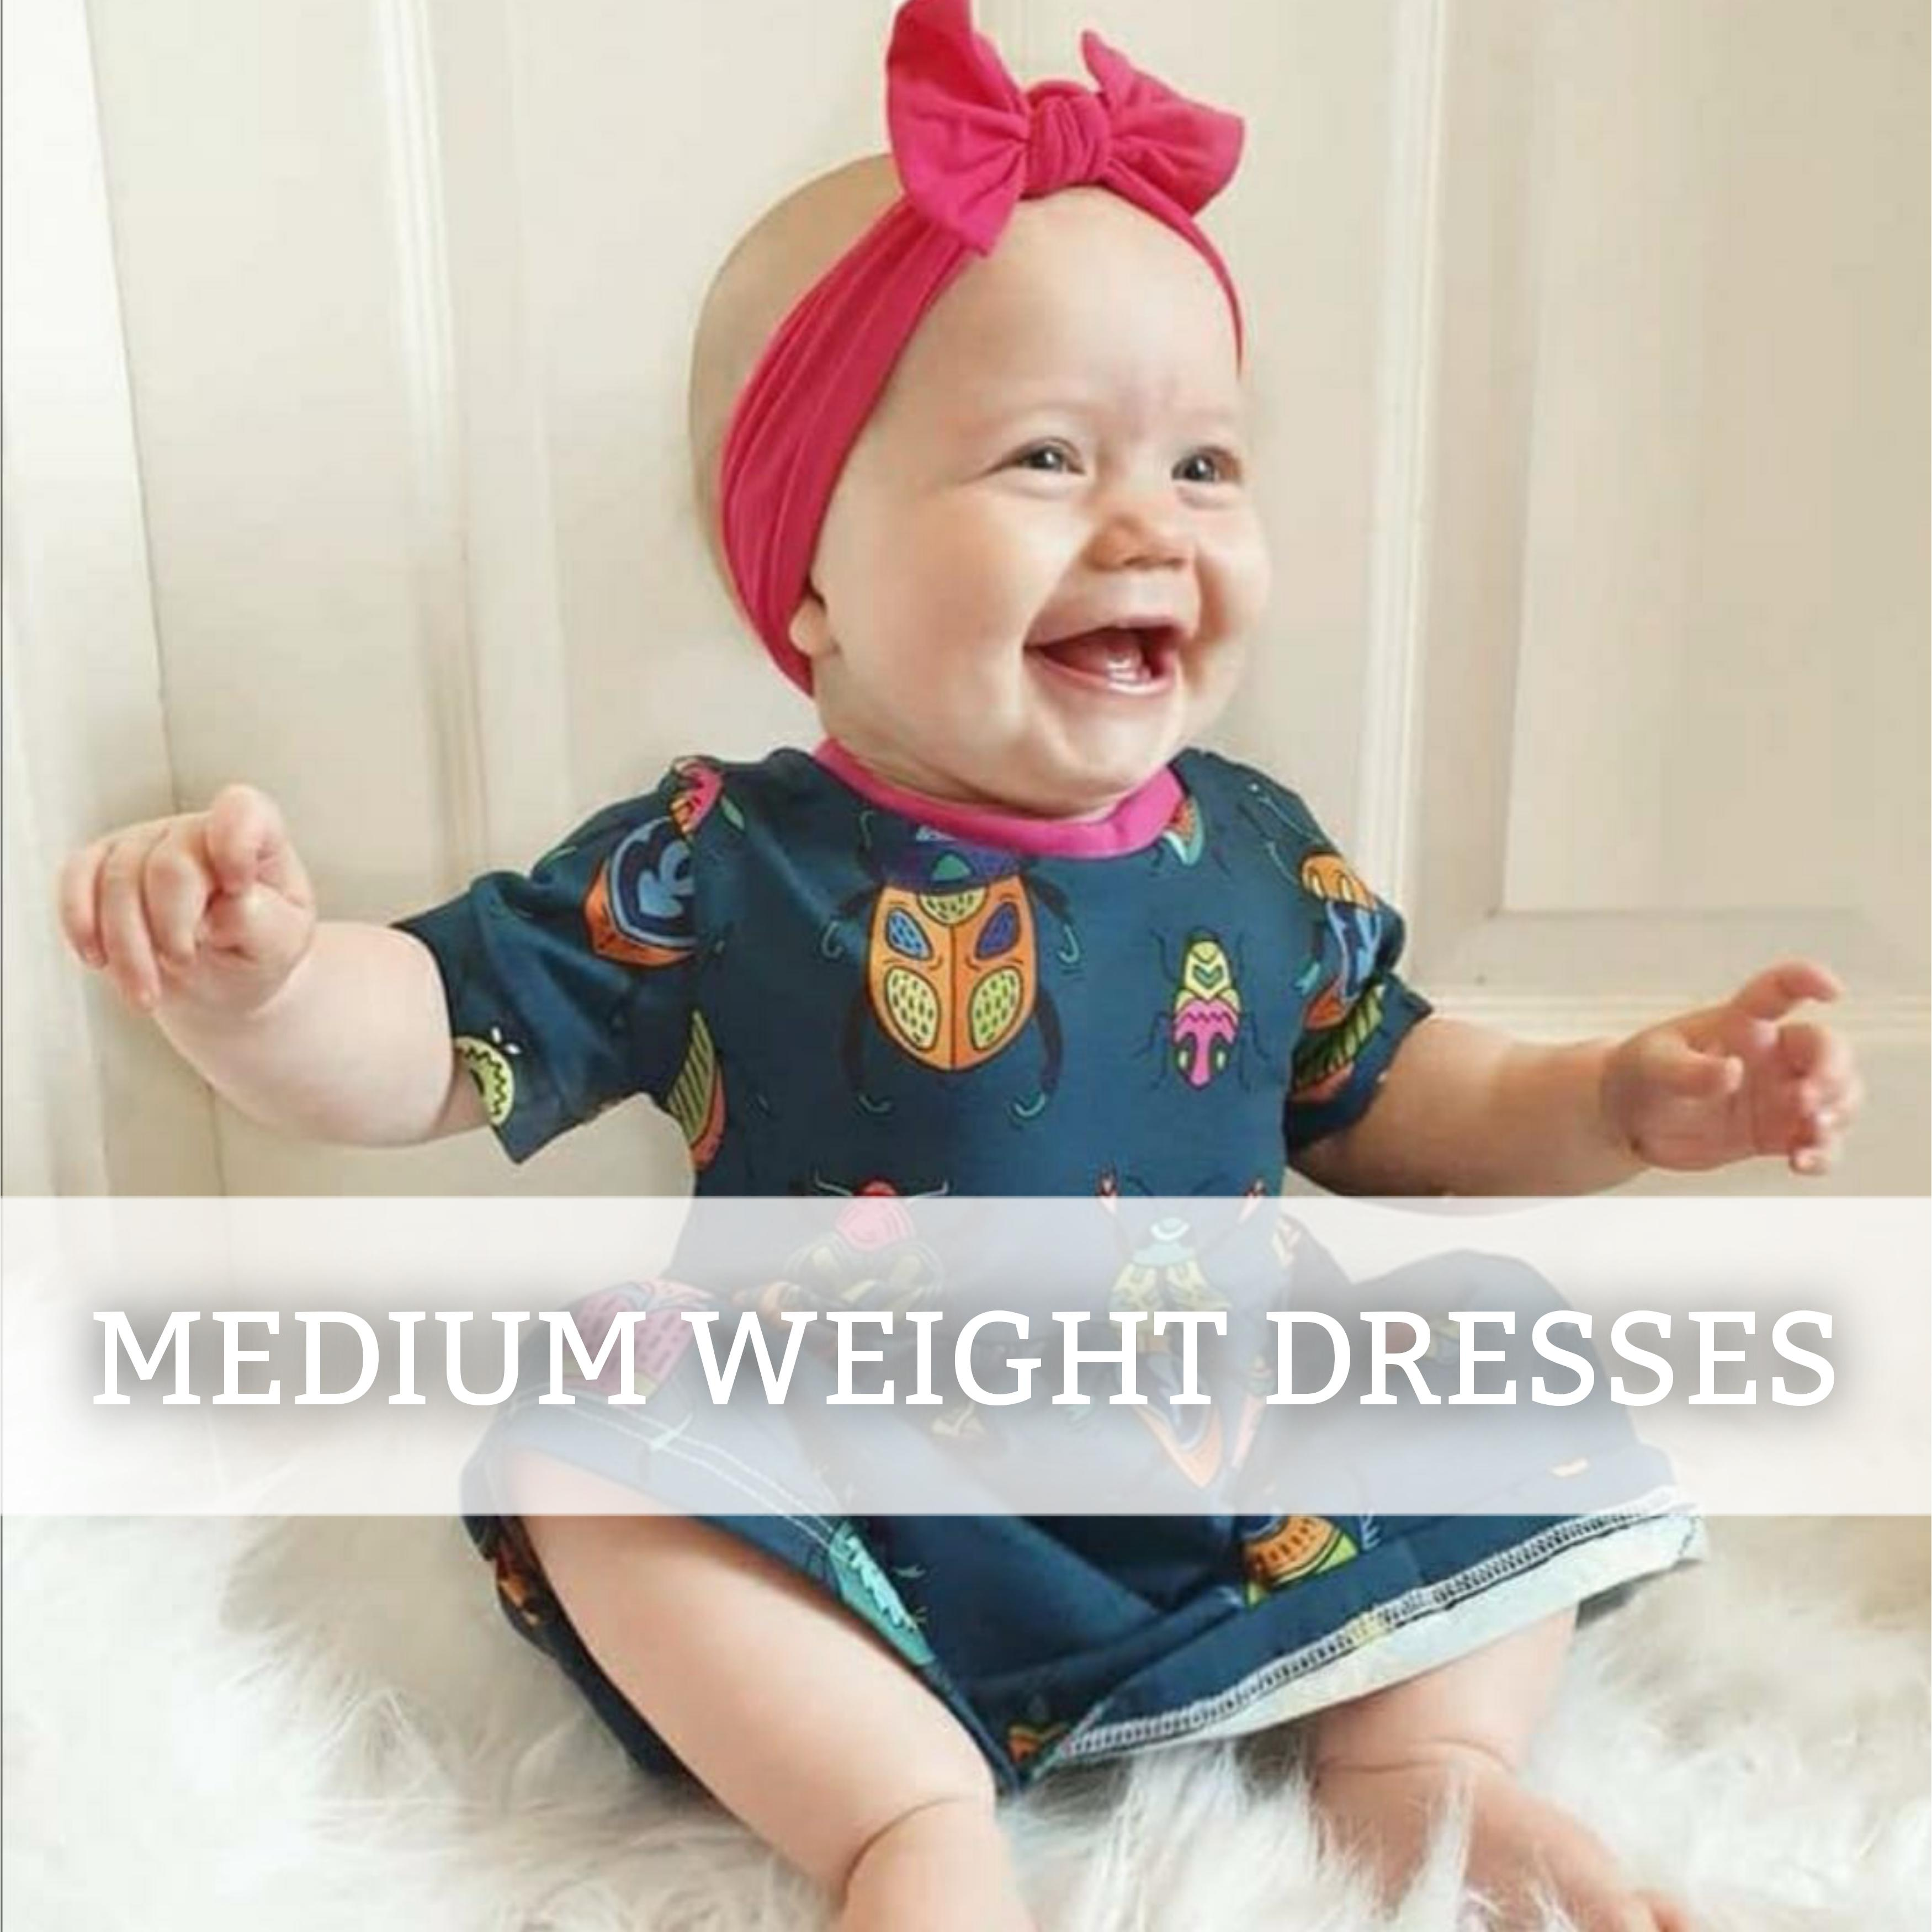 Medium Weight Dresses